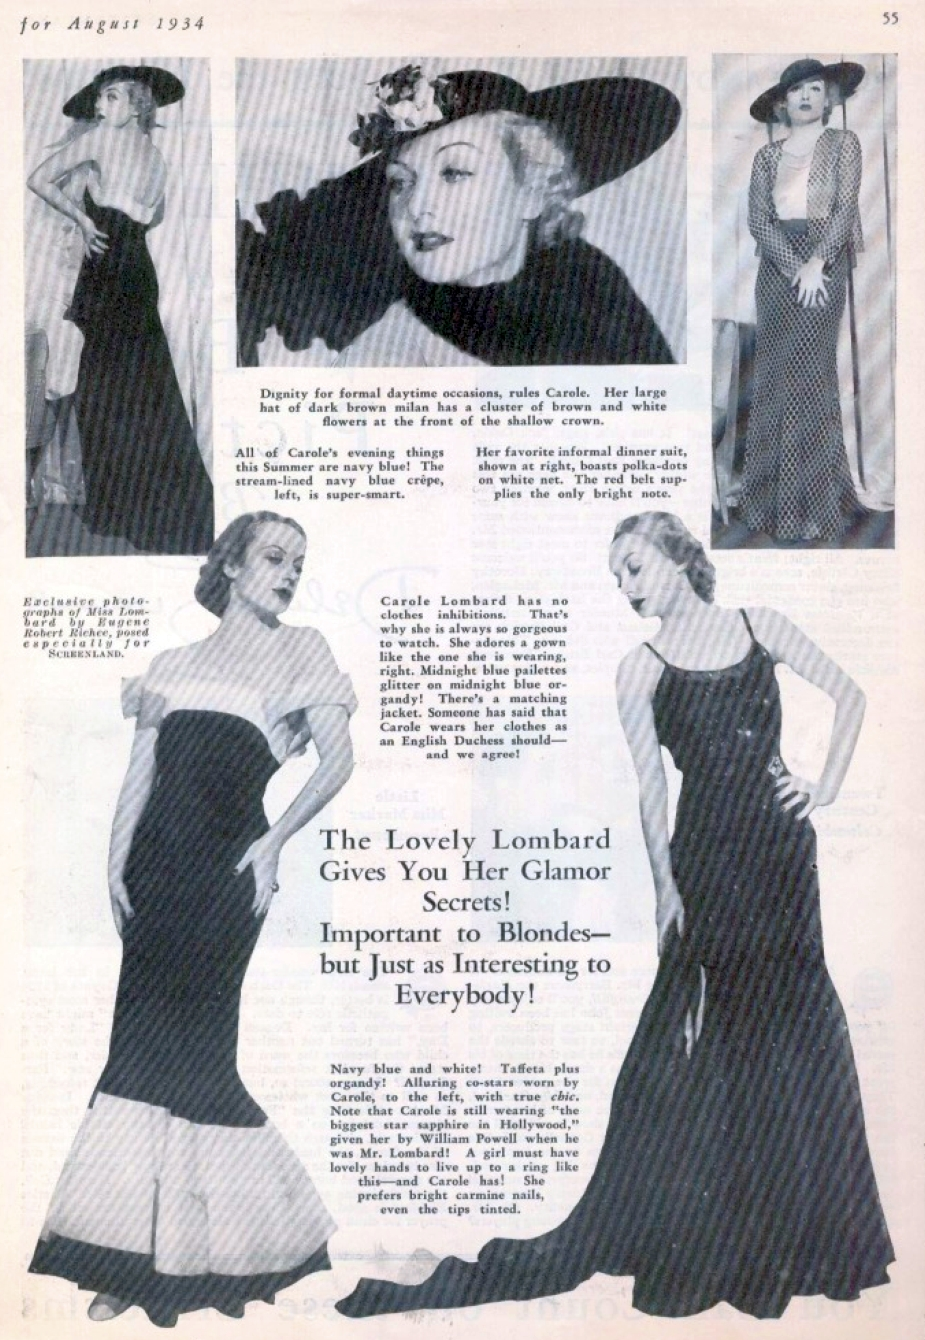 carole lombard screenland aug 1934 beauty 01a